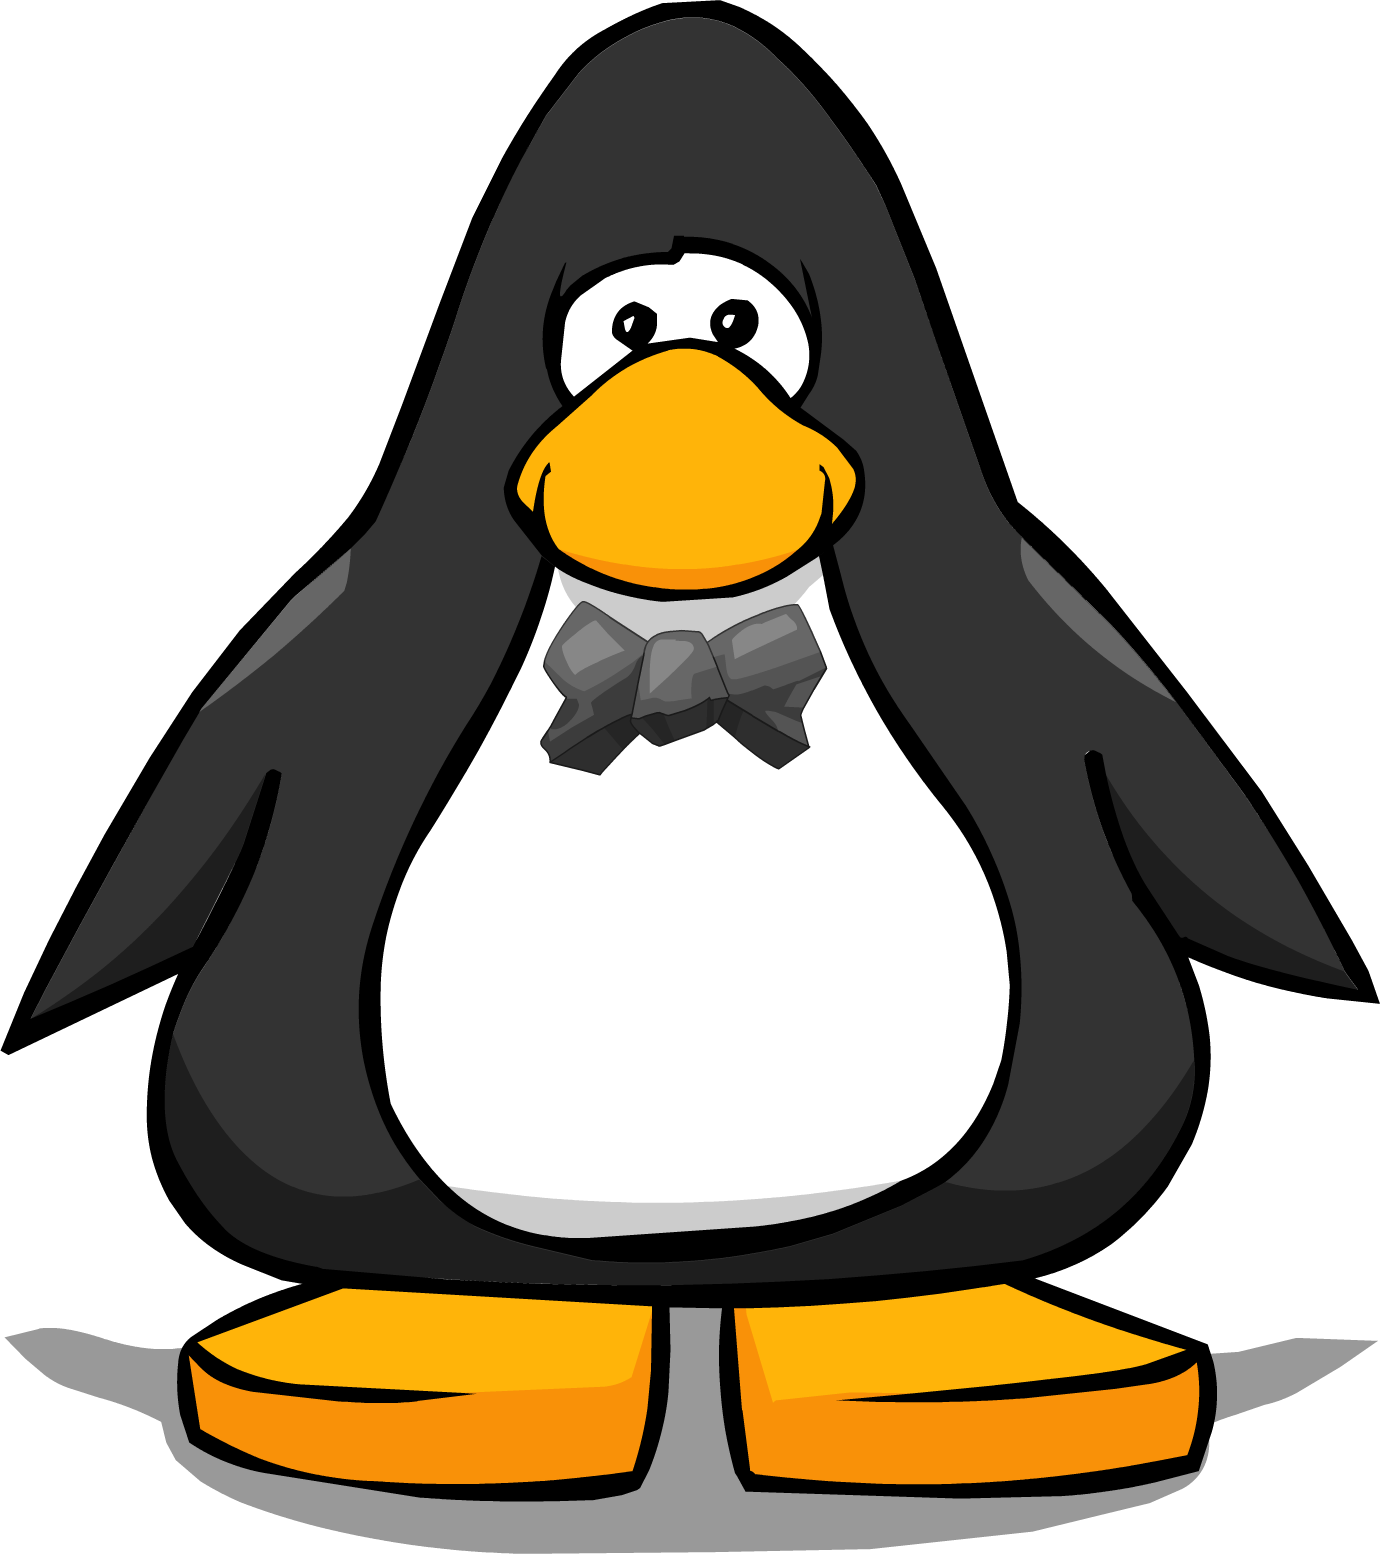 Clipart penquin bow tie. Image stone from a